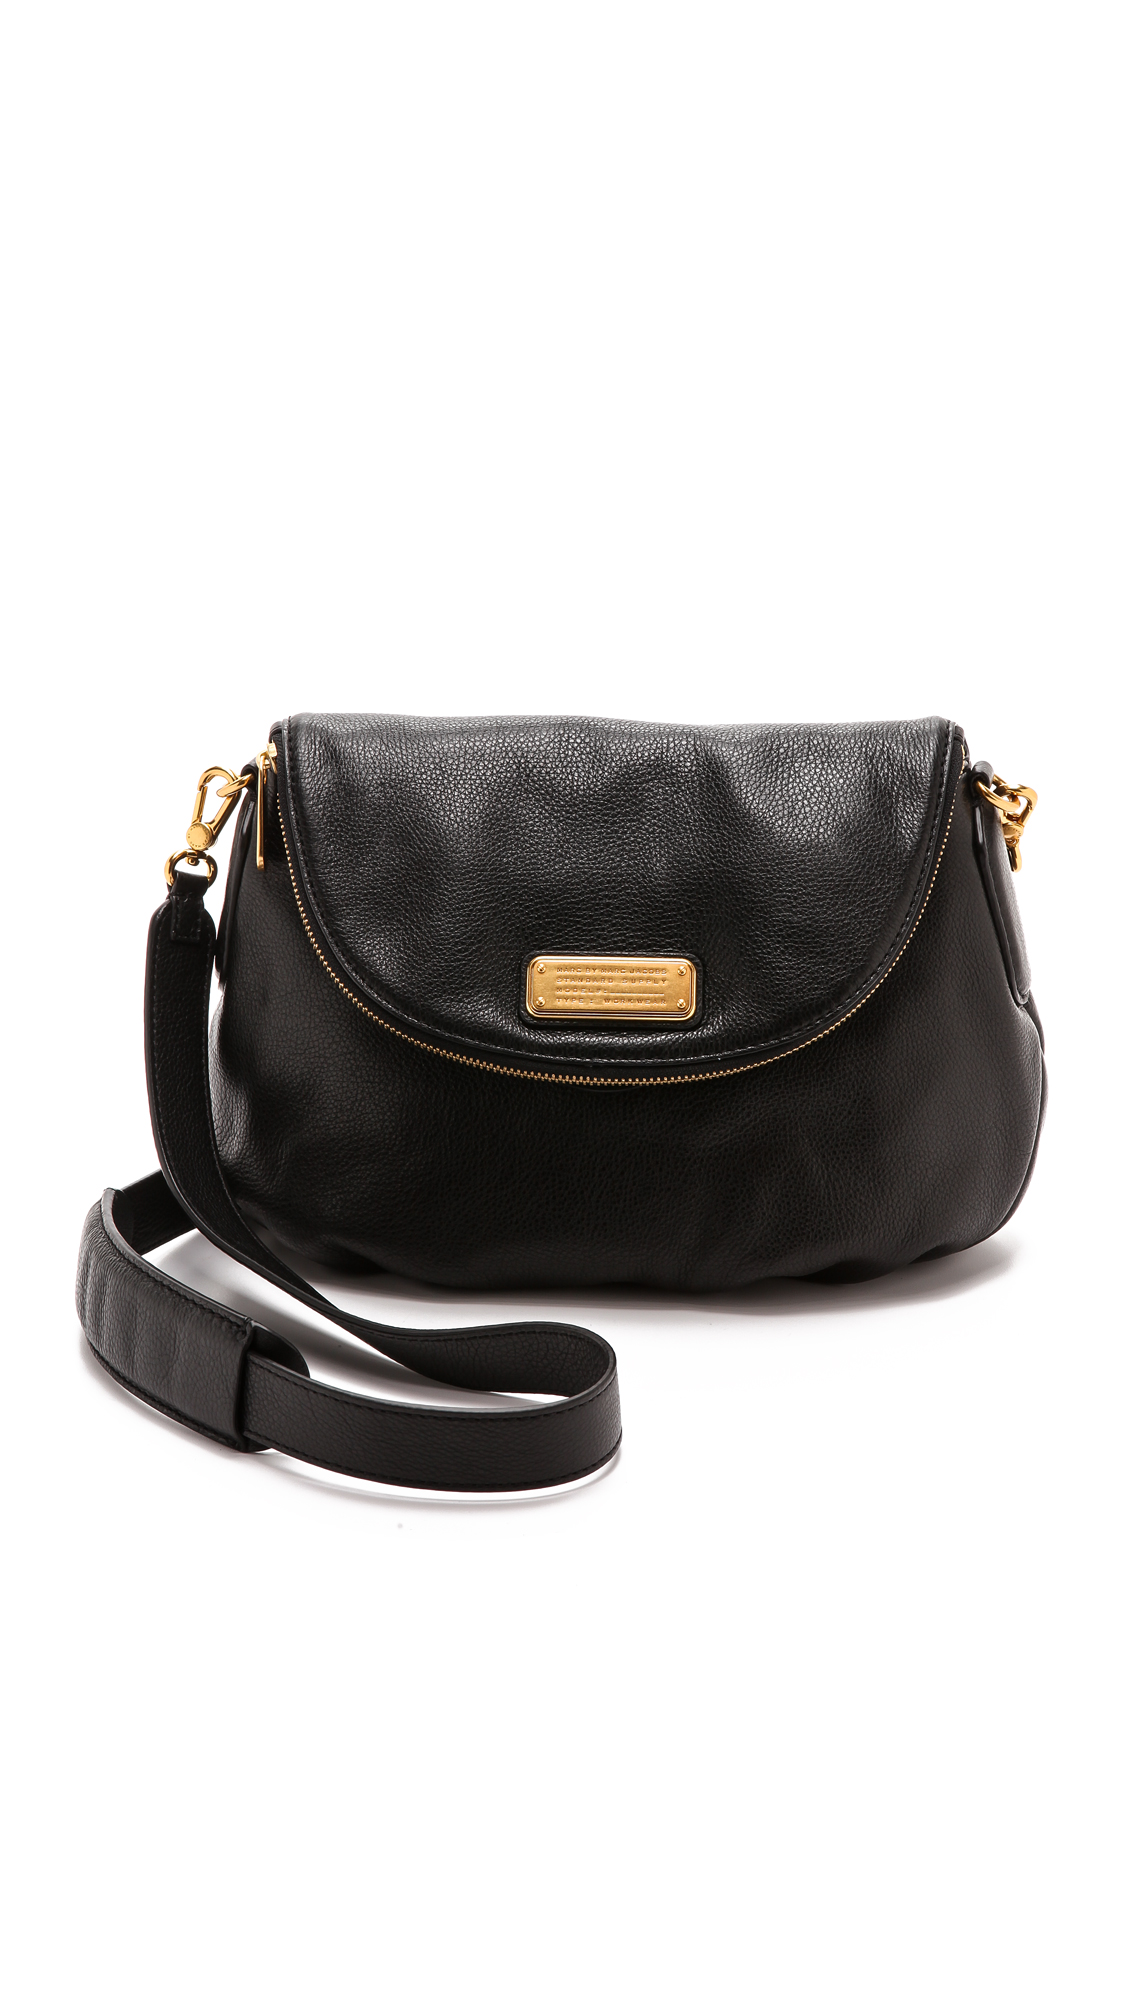 4bcebaedcc72 Marc by Marc Jacobs New Q Natasha Bag